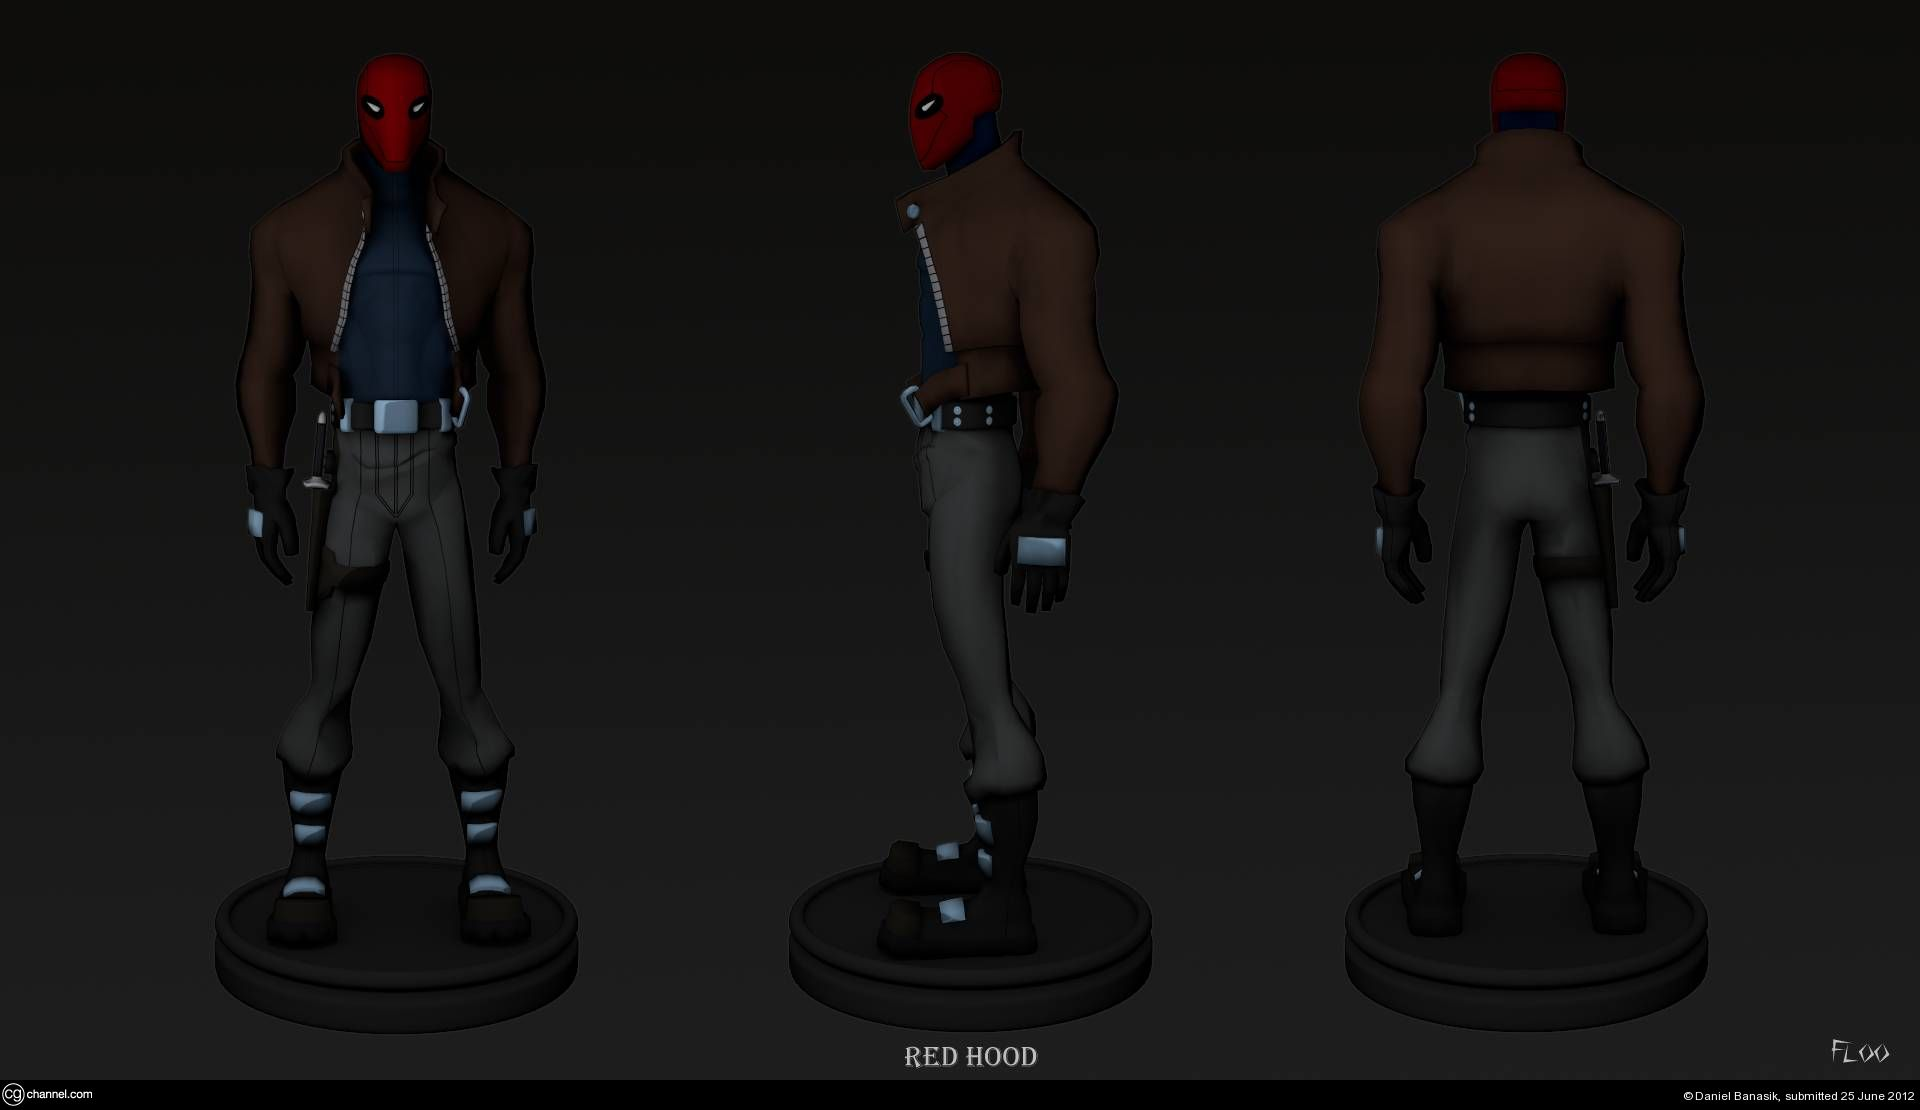 Red Hood (League of Light) - Injustice Fanon Wiki